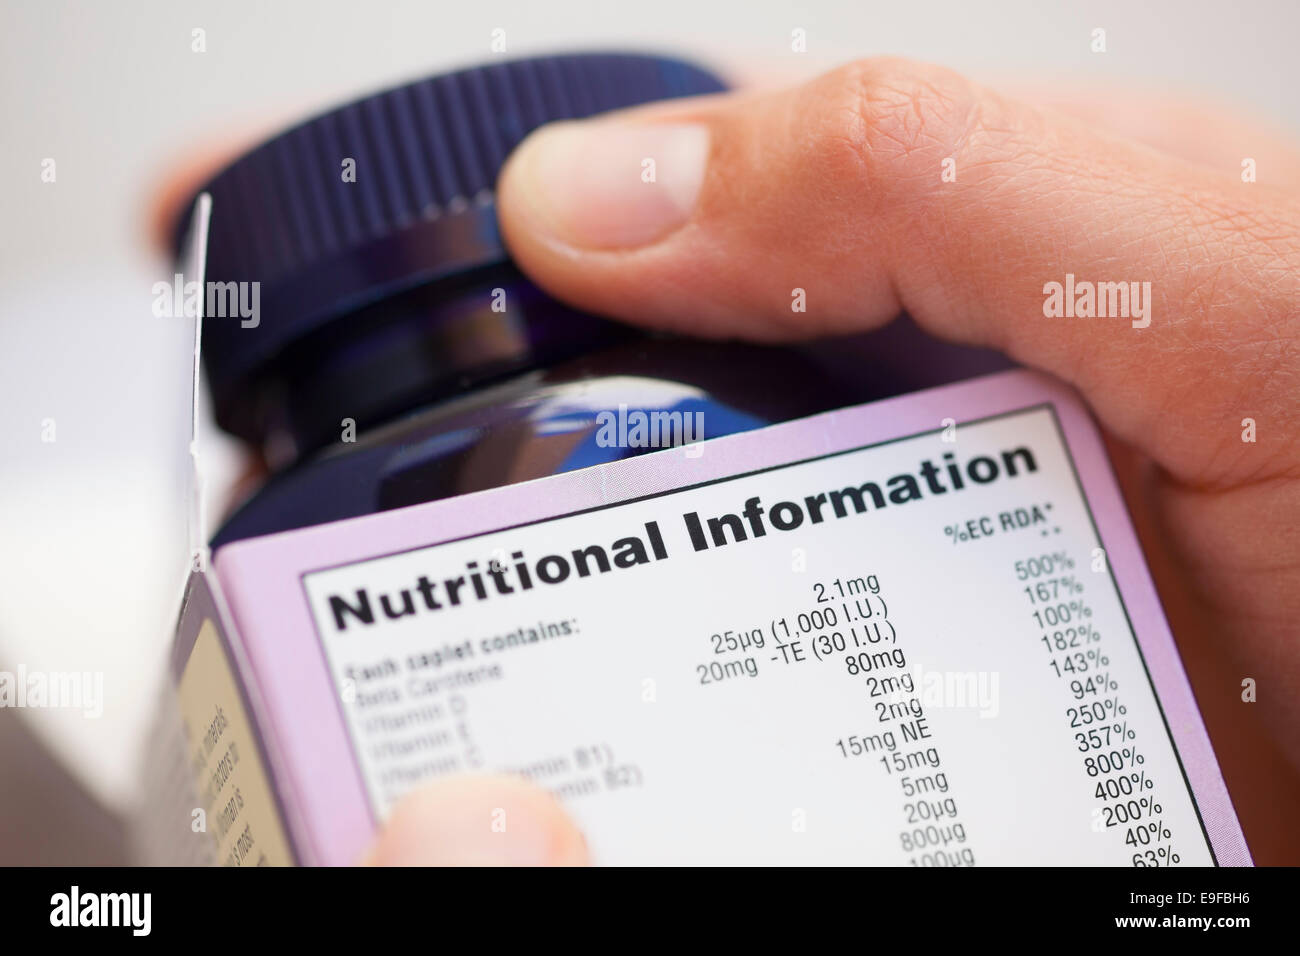 Human hand take out bottle with vitamin pills from the box with Nutritional information. - Stock Image